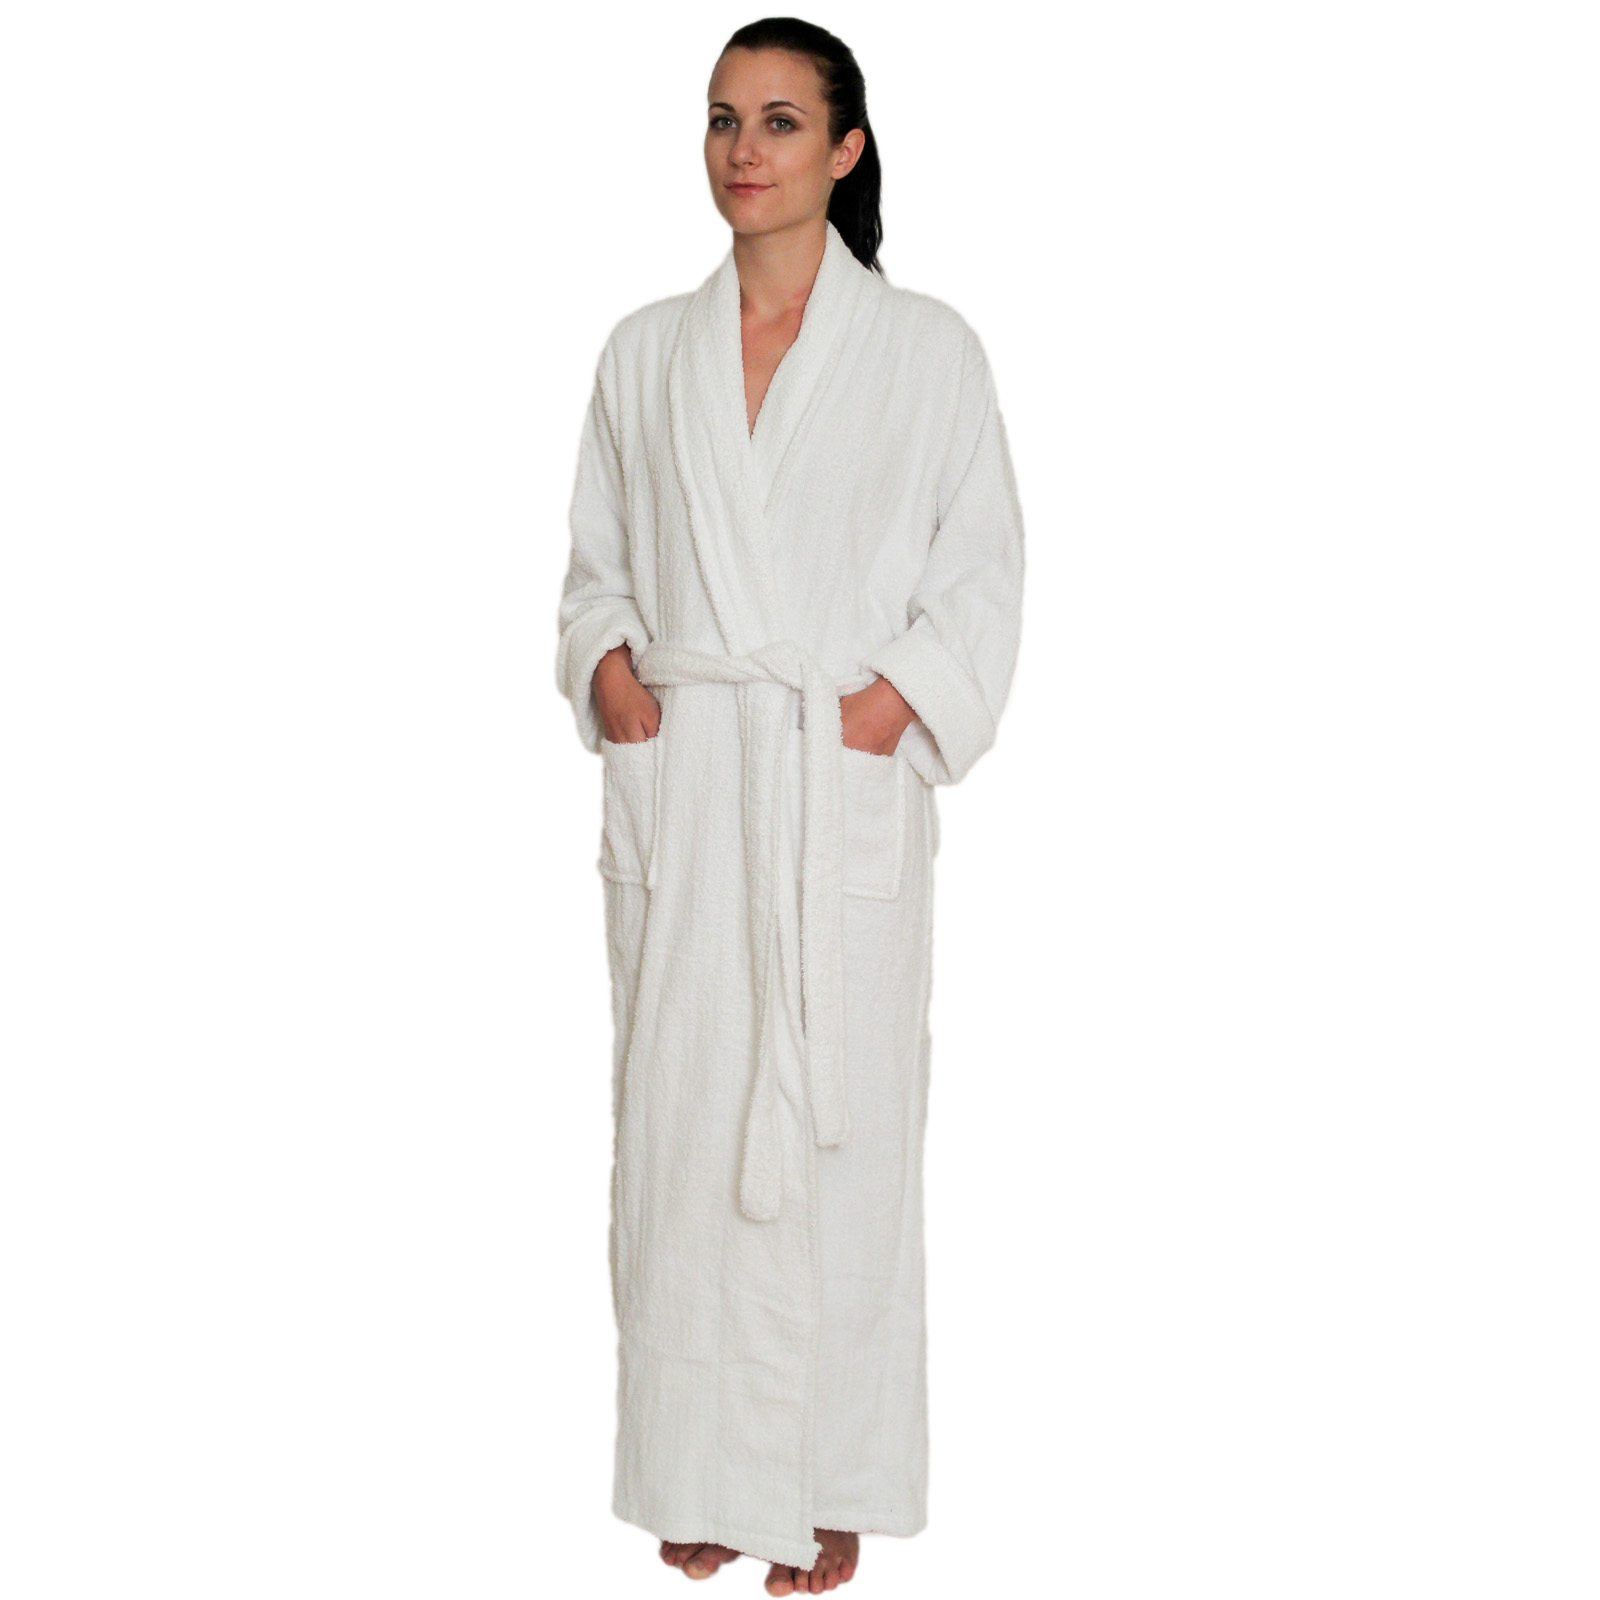 a688a9936b White · Full Length Terry Cloth Robe Long Sleeves 100% cotton  49.99  Colors  Mint-2X Mint · Full ...